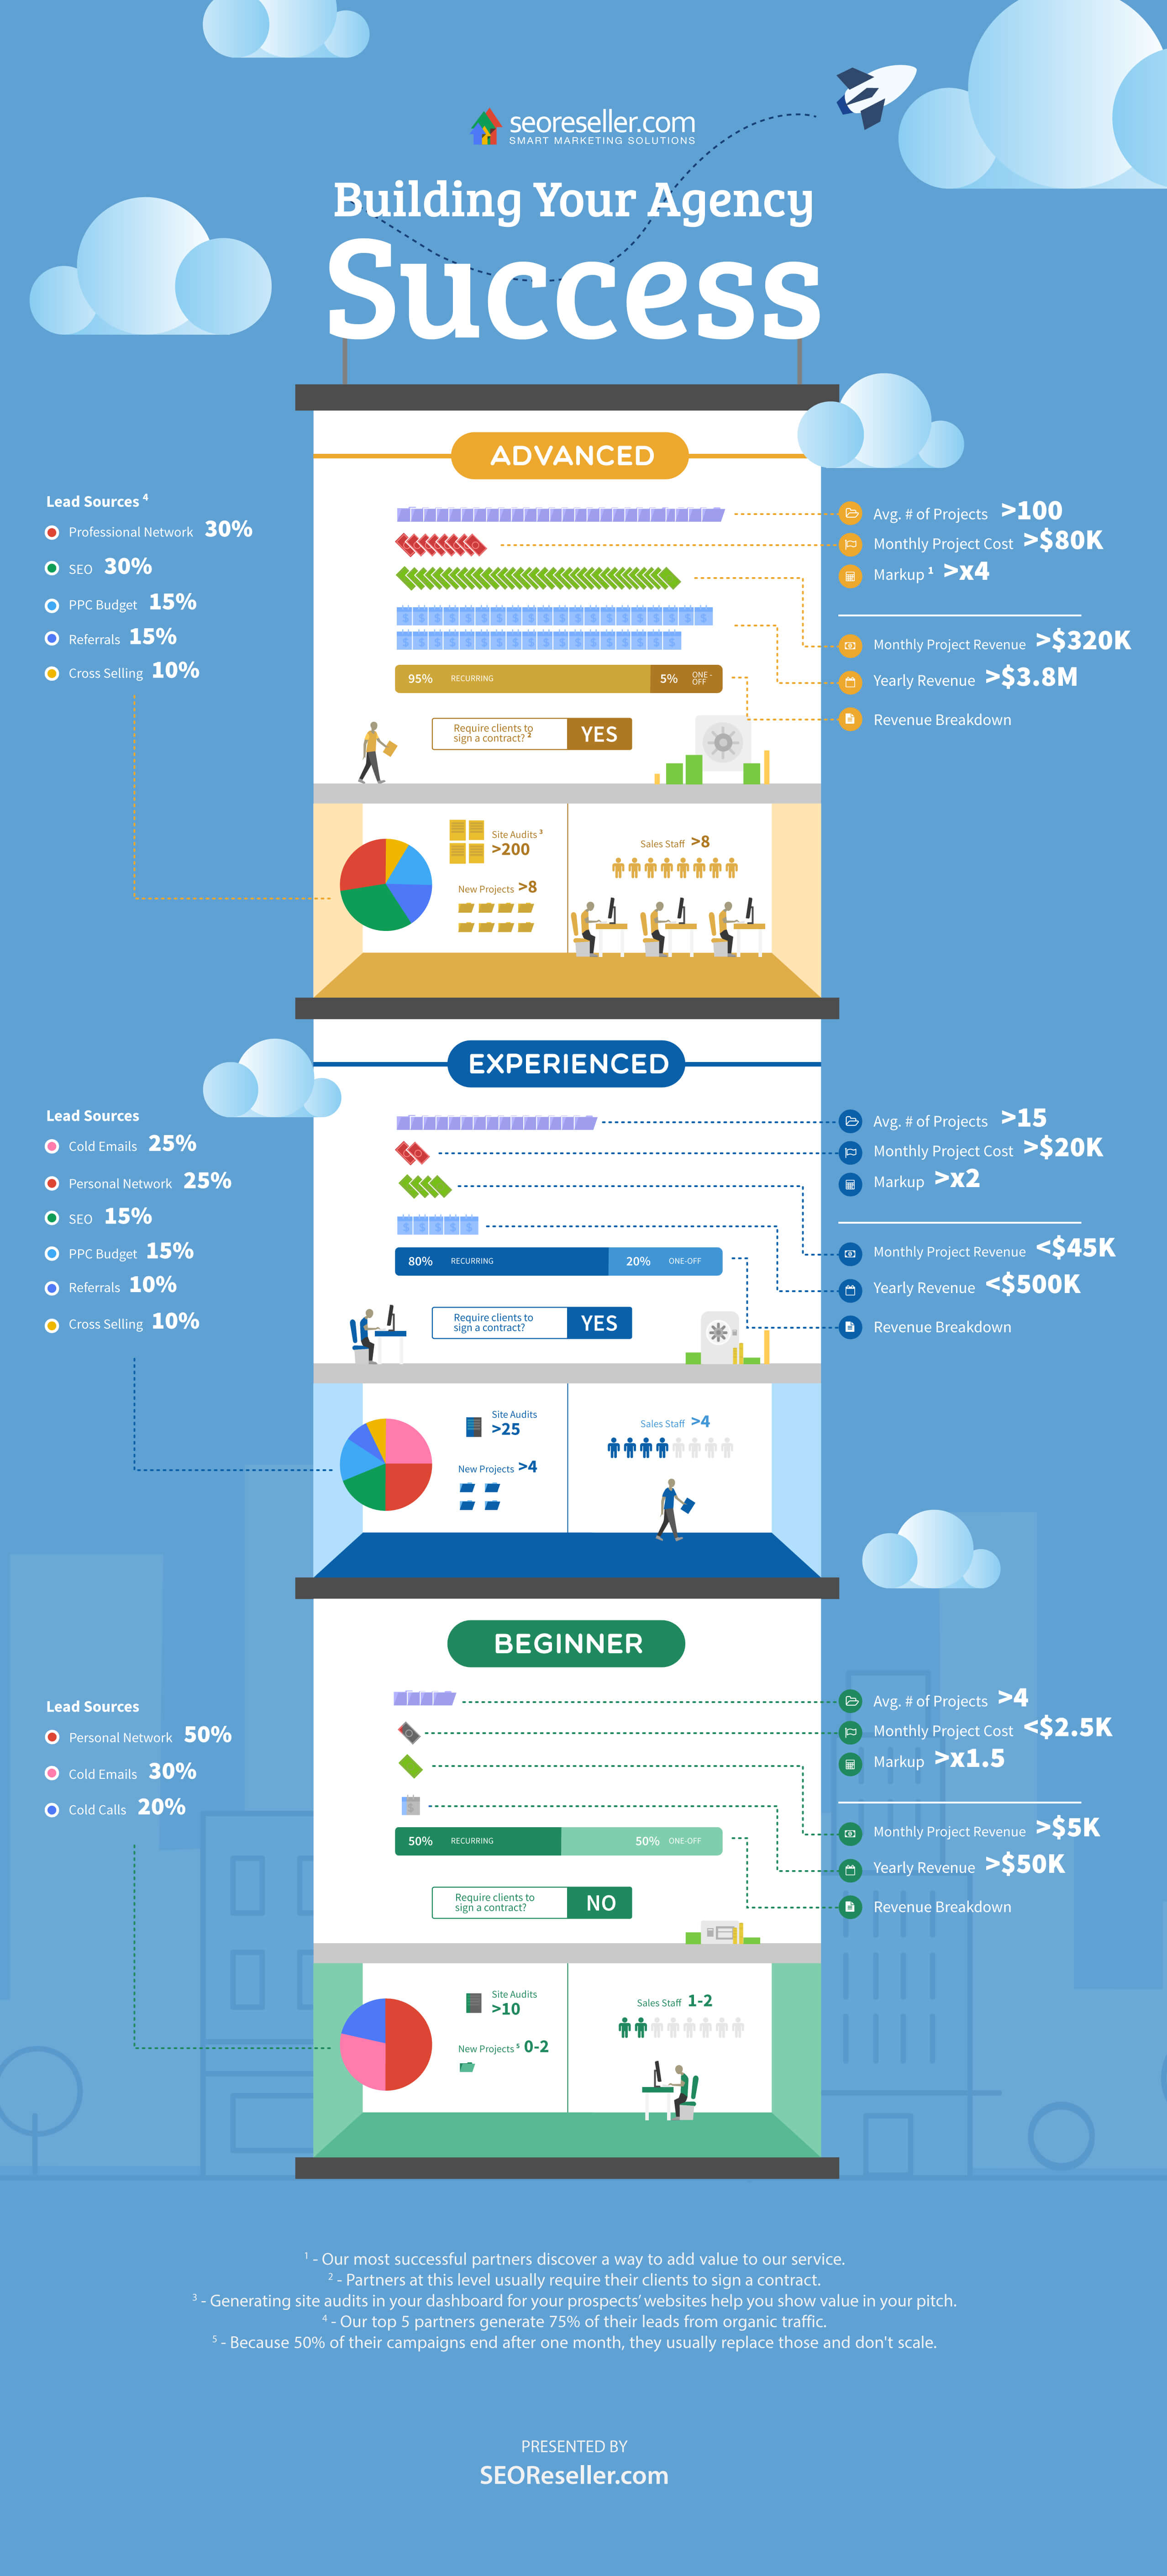 Building Your Agency Success Infographic